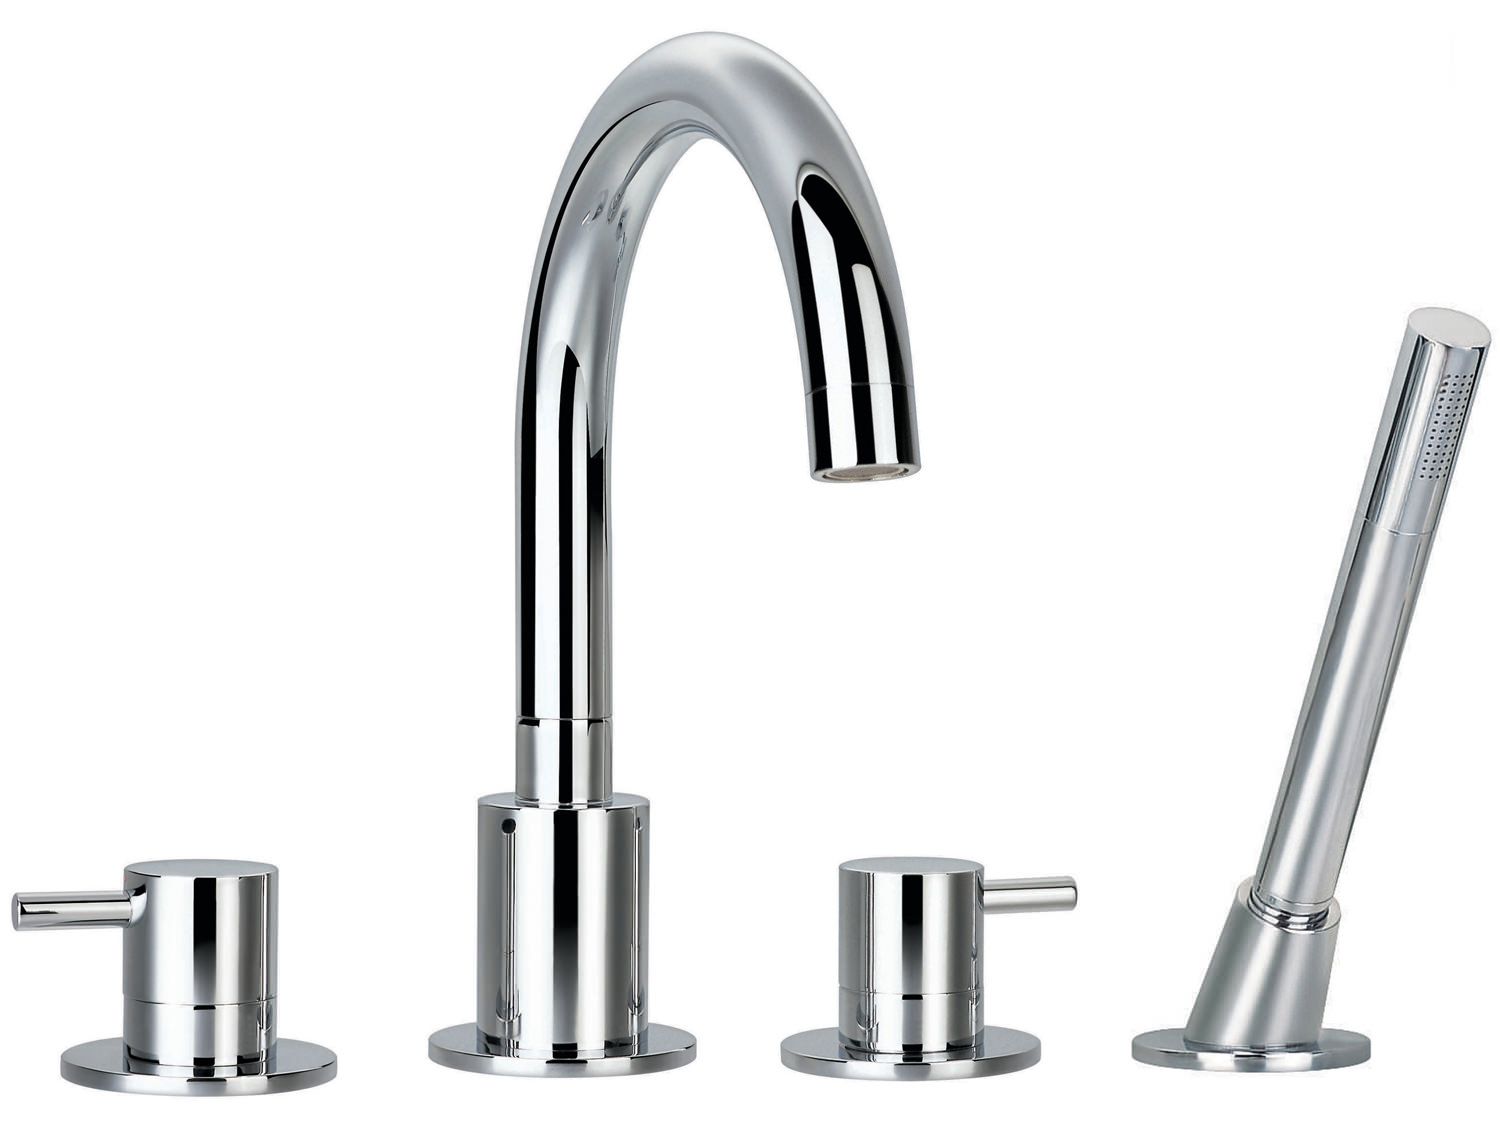 Flova Levo 4 Hole Bath Shower Mixer Tap With Handset And